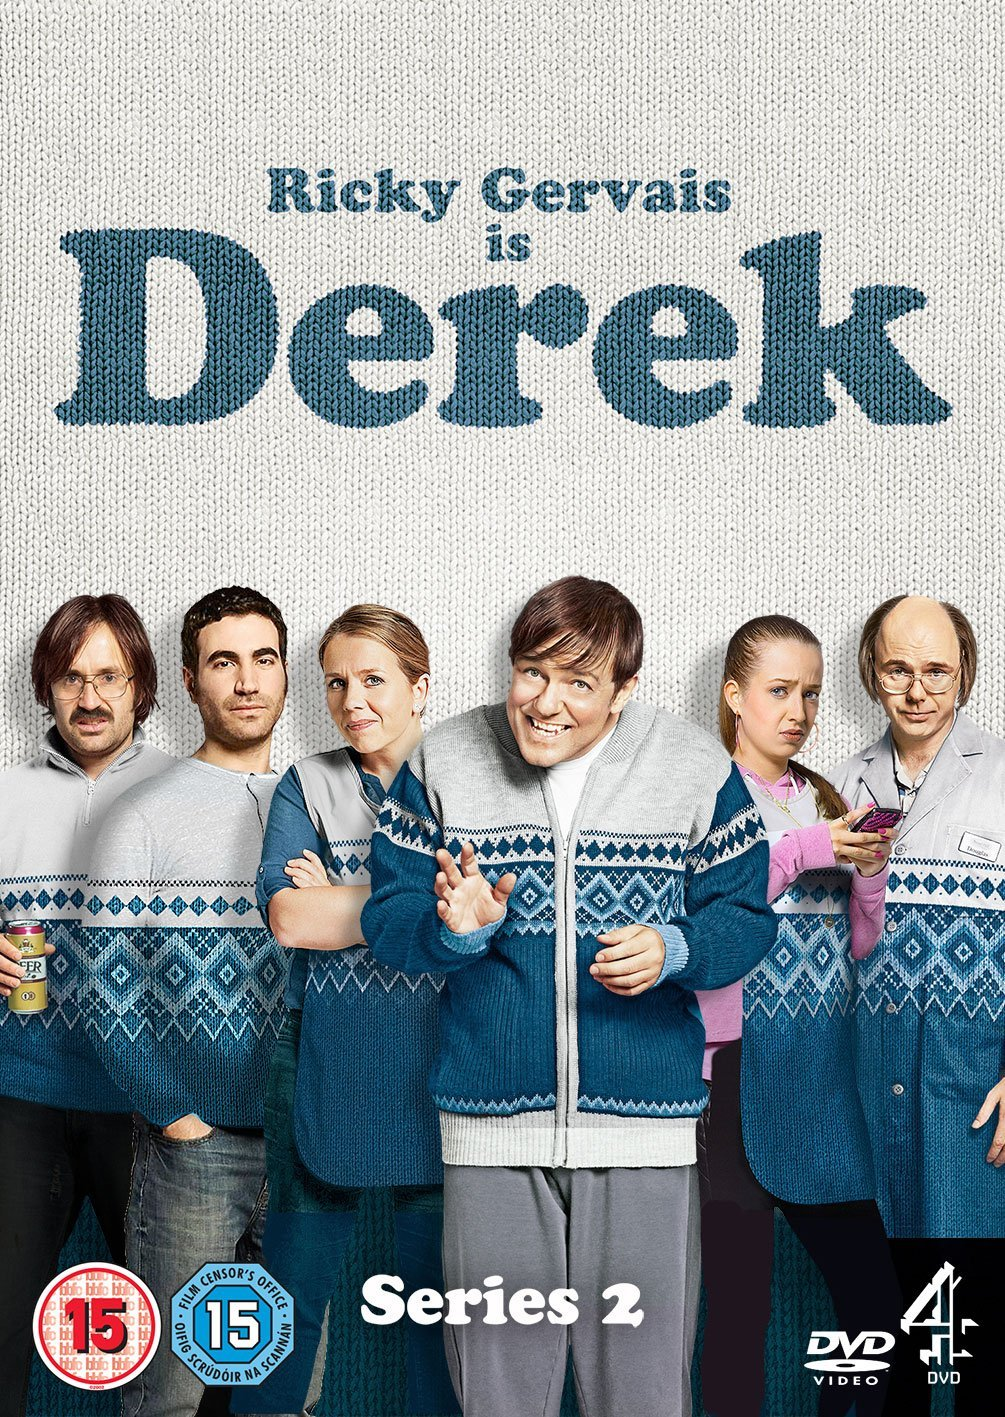 boom competitions - win Derek series 2 on DVD